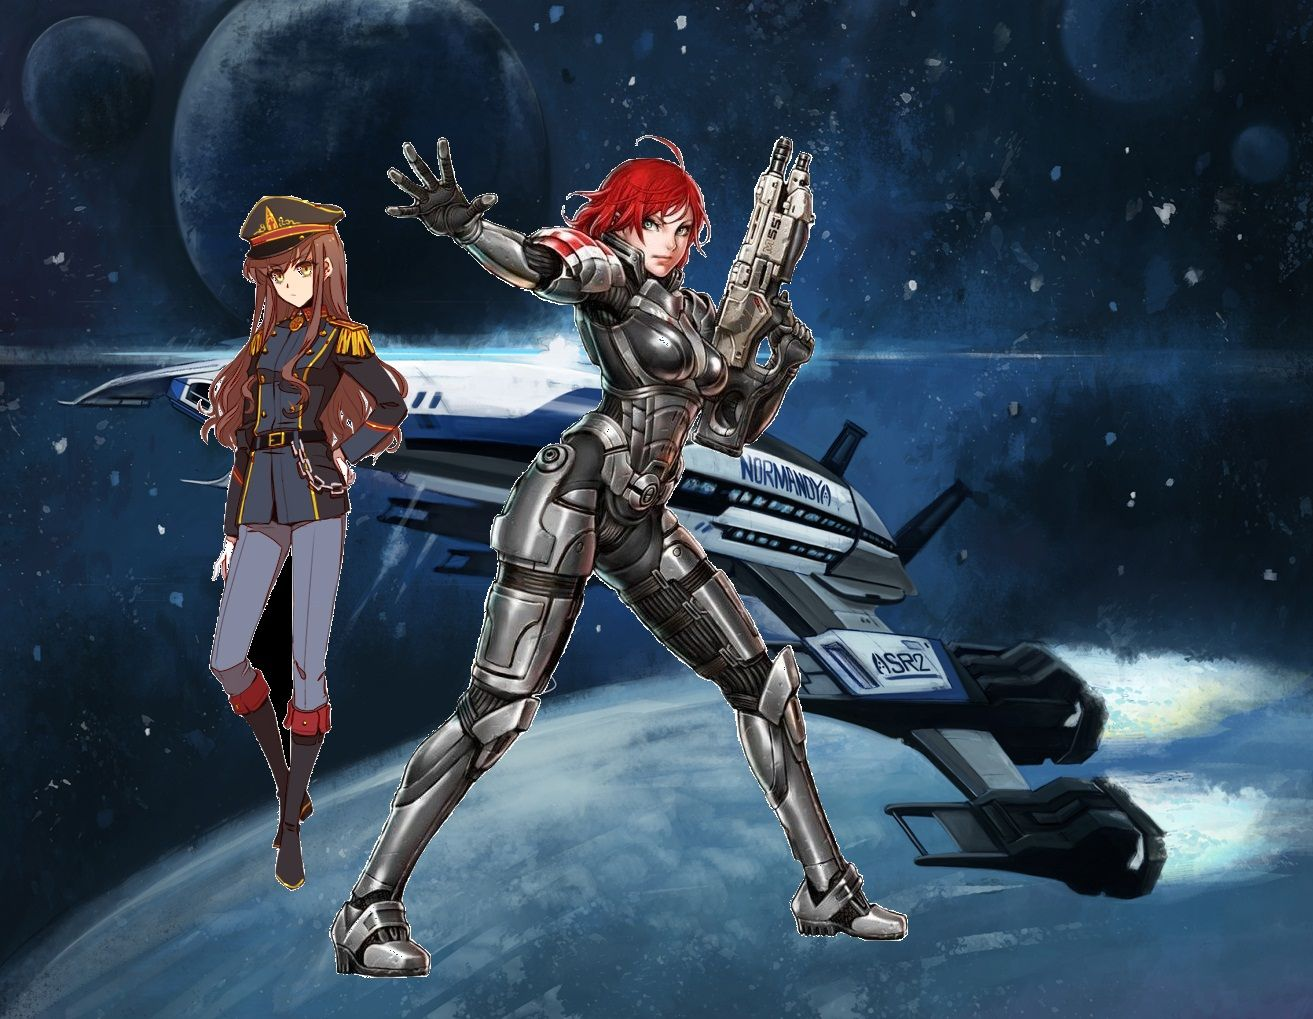 This Is My Fan Pic Contribution For A Good Fanfic Story Of Boyzilla Imouto Girlzilla Name Digital Galaxy Fate Extra X M Fan Picture Humans Series Mass Effect Fate/stay night crossover fanfiction archive. this is my fan pic contribution for a